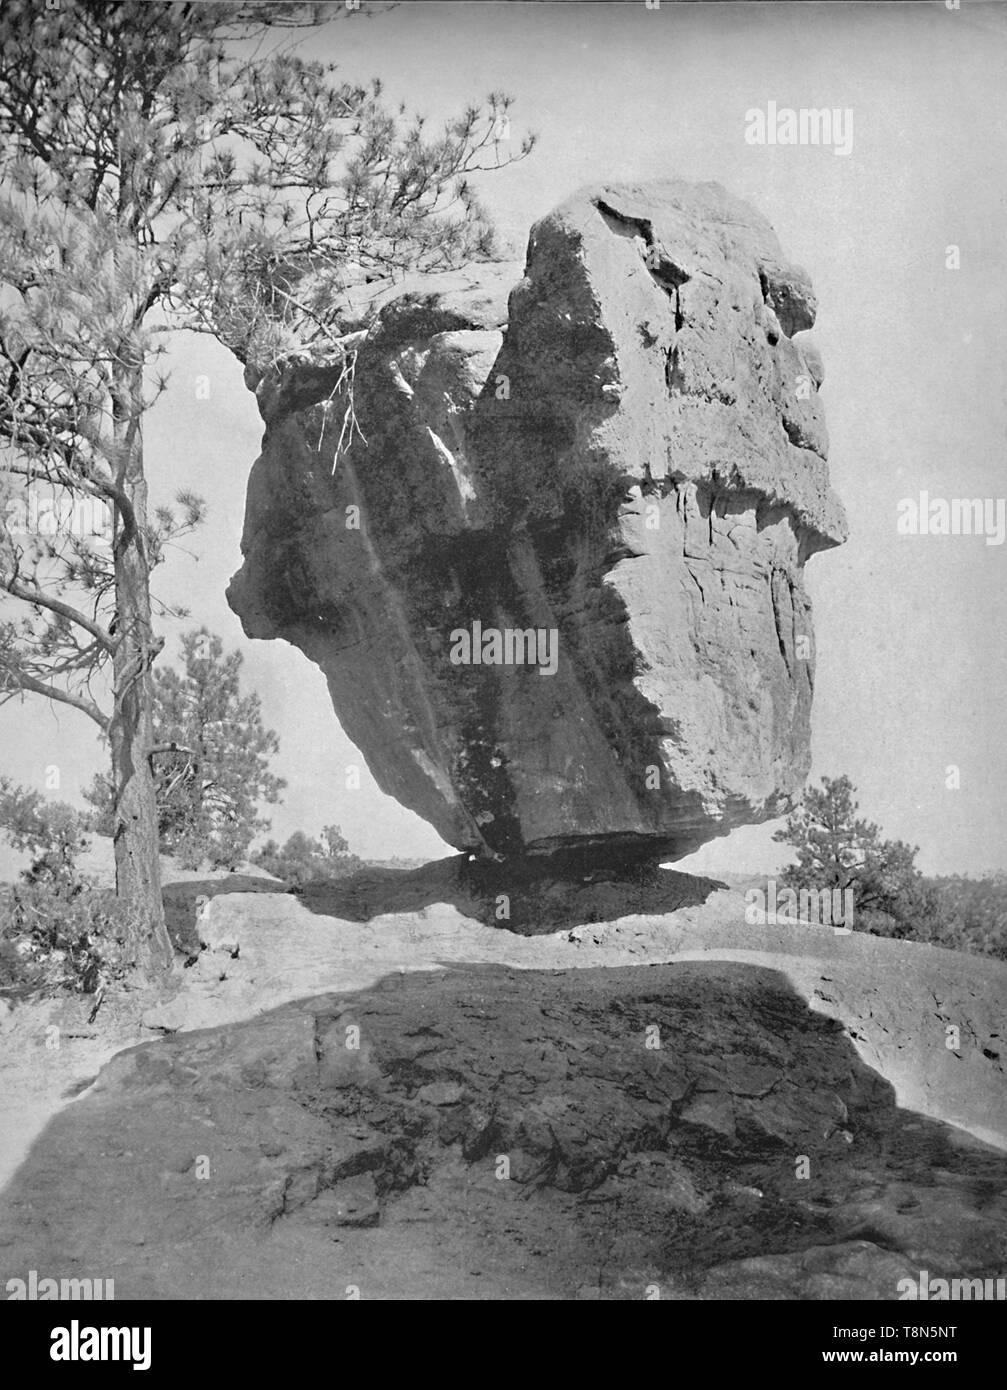 "'Balanced Rock, Garden of the Gods, Col.', c1897. Garden of the Gods, a public park in Colorado Springs, Colorado, US designated a National Natural Landmark.  From ""A Tour Through the New World America"", by Prof. Geo. R. Cromwell. [C. N. Greig & Co., London, c1897] - Stock Image"